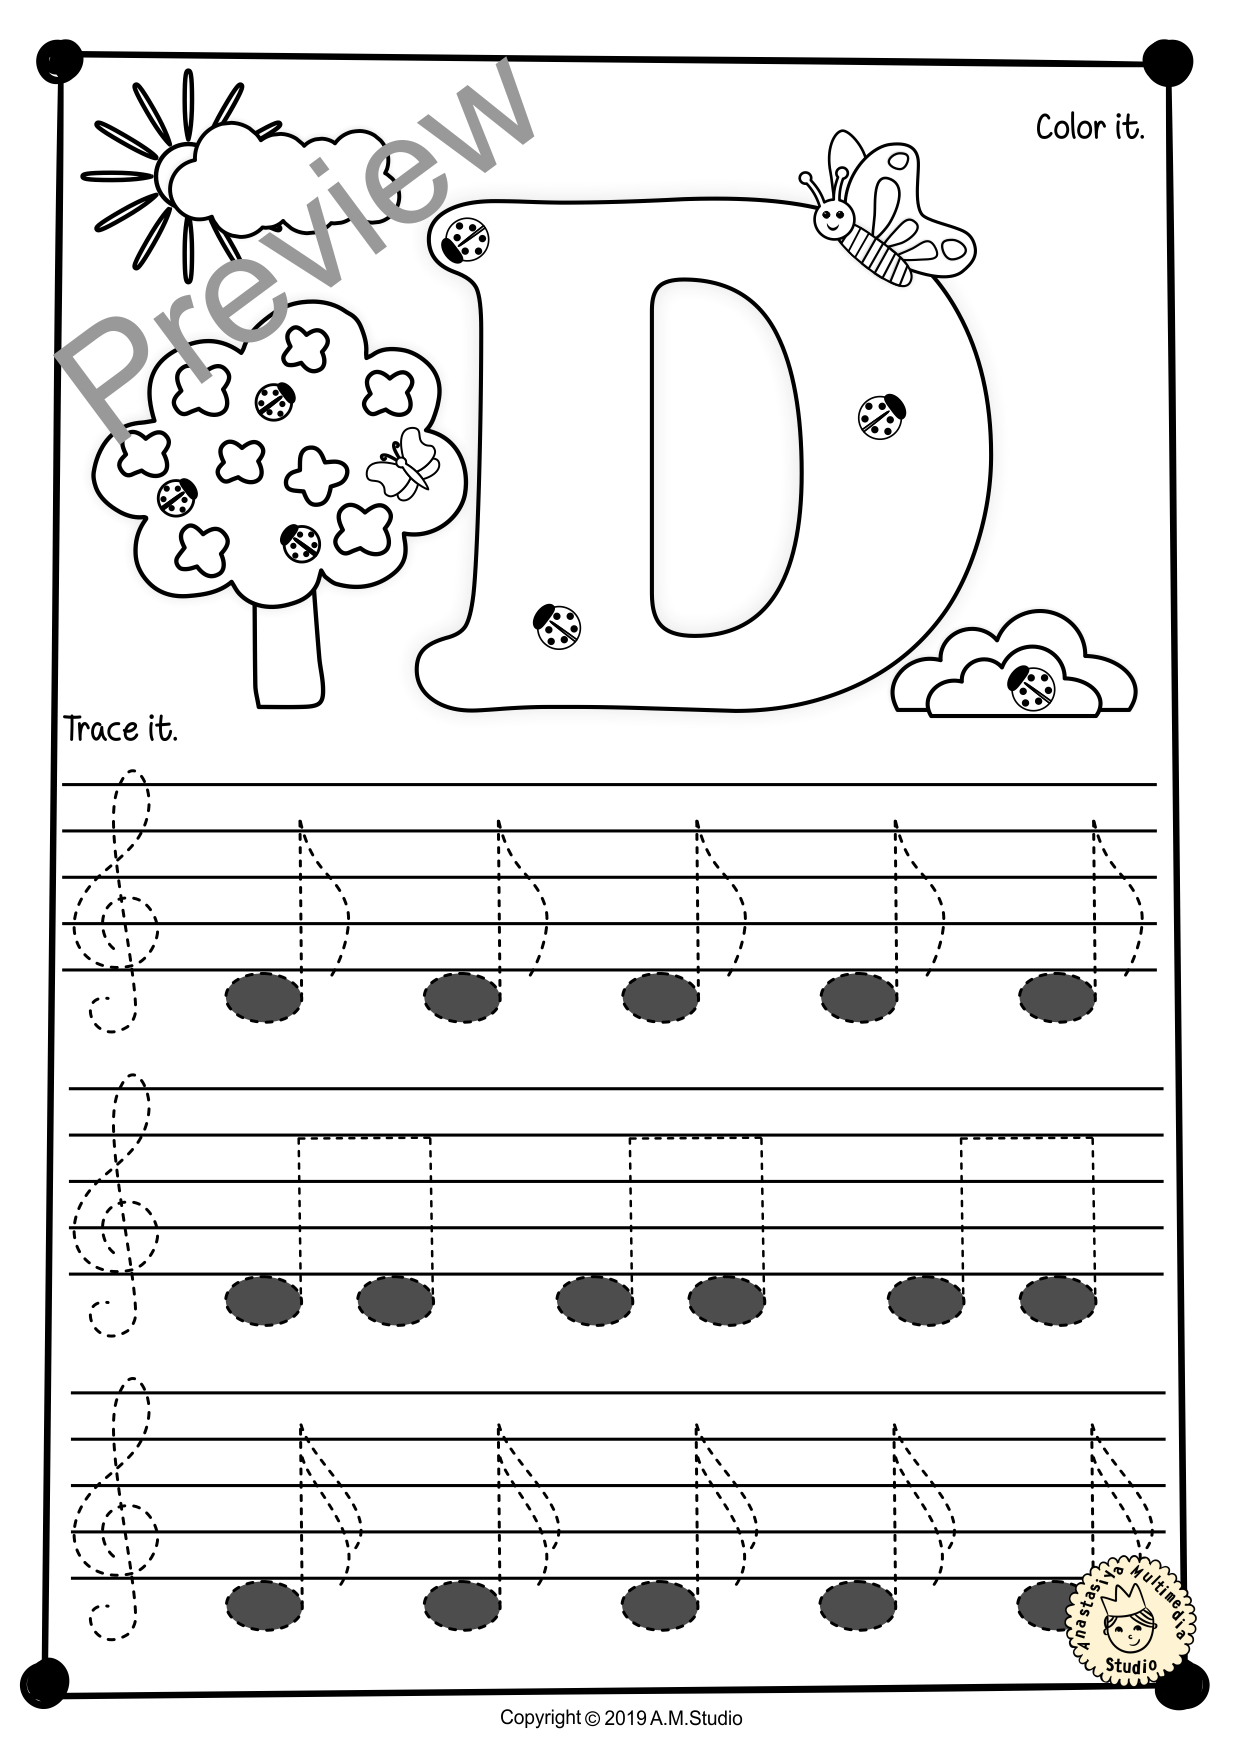 Treble Clef Tracing Music Notes Worksheets For Spring In